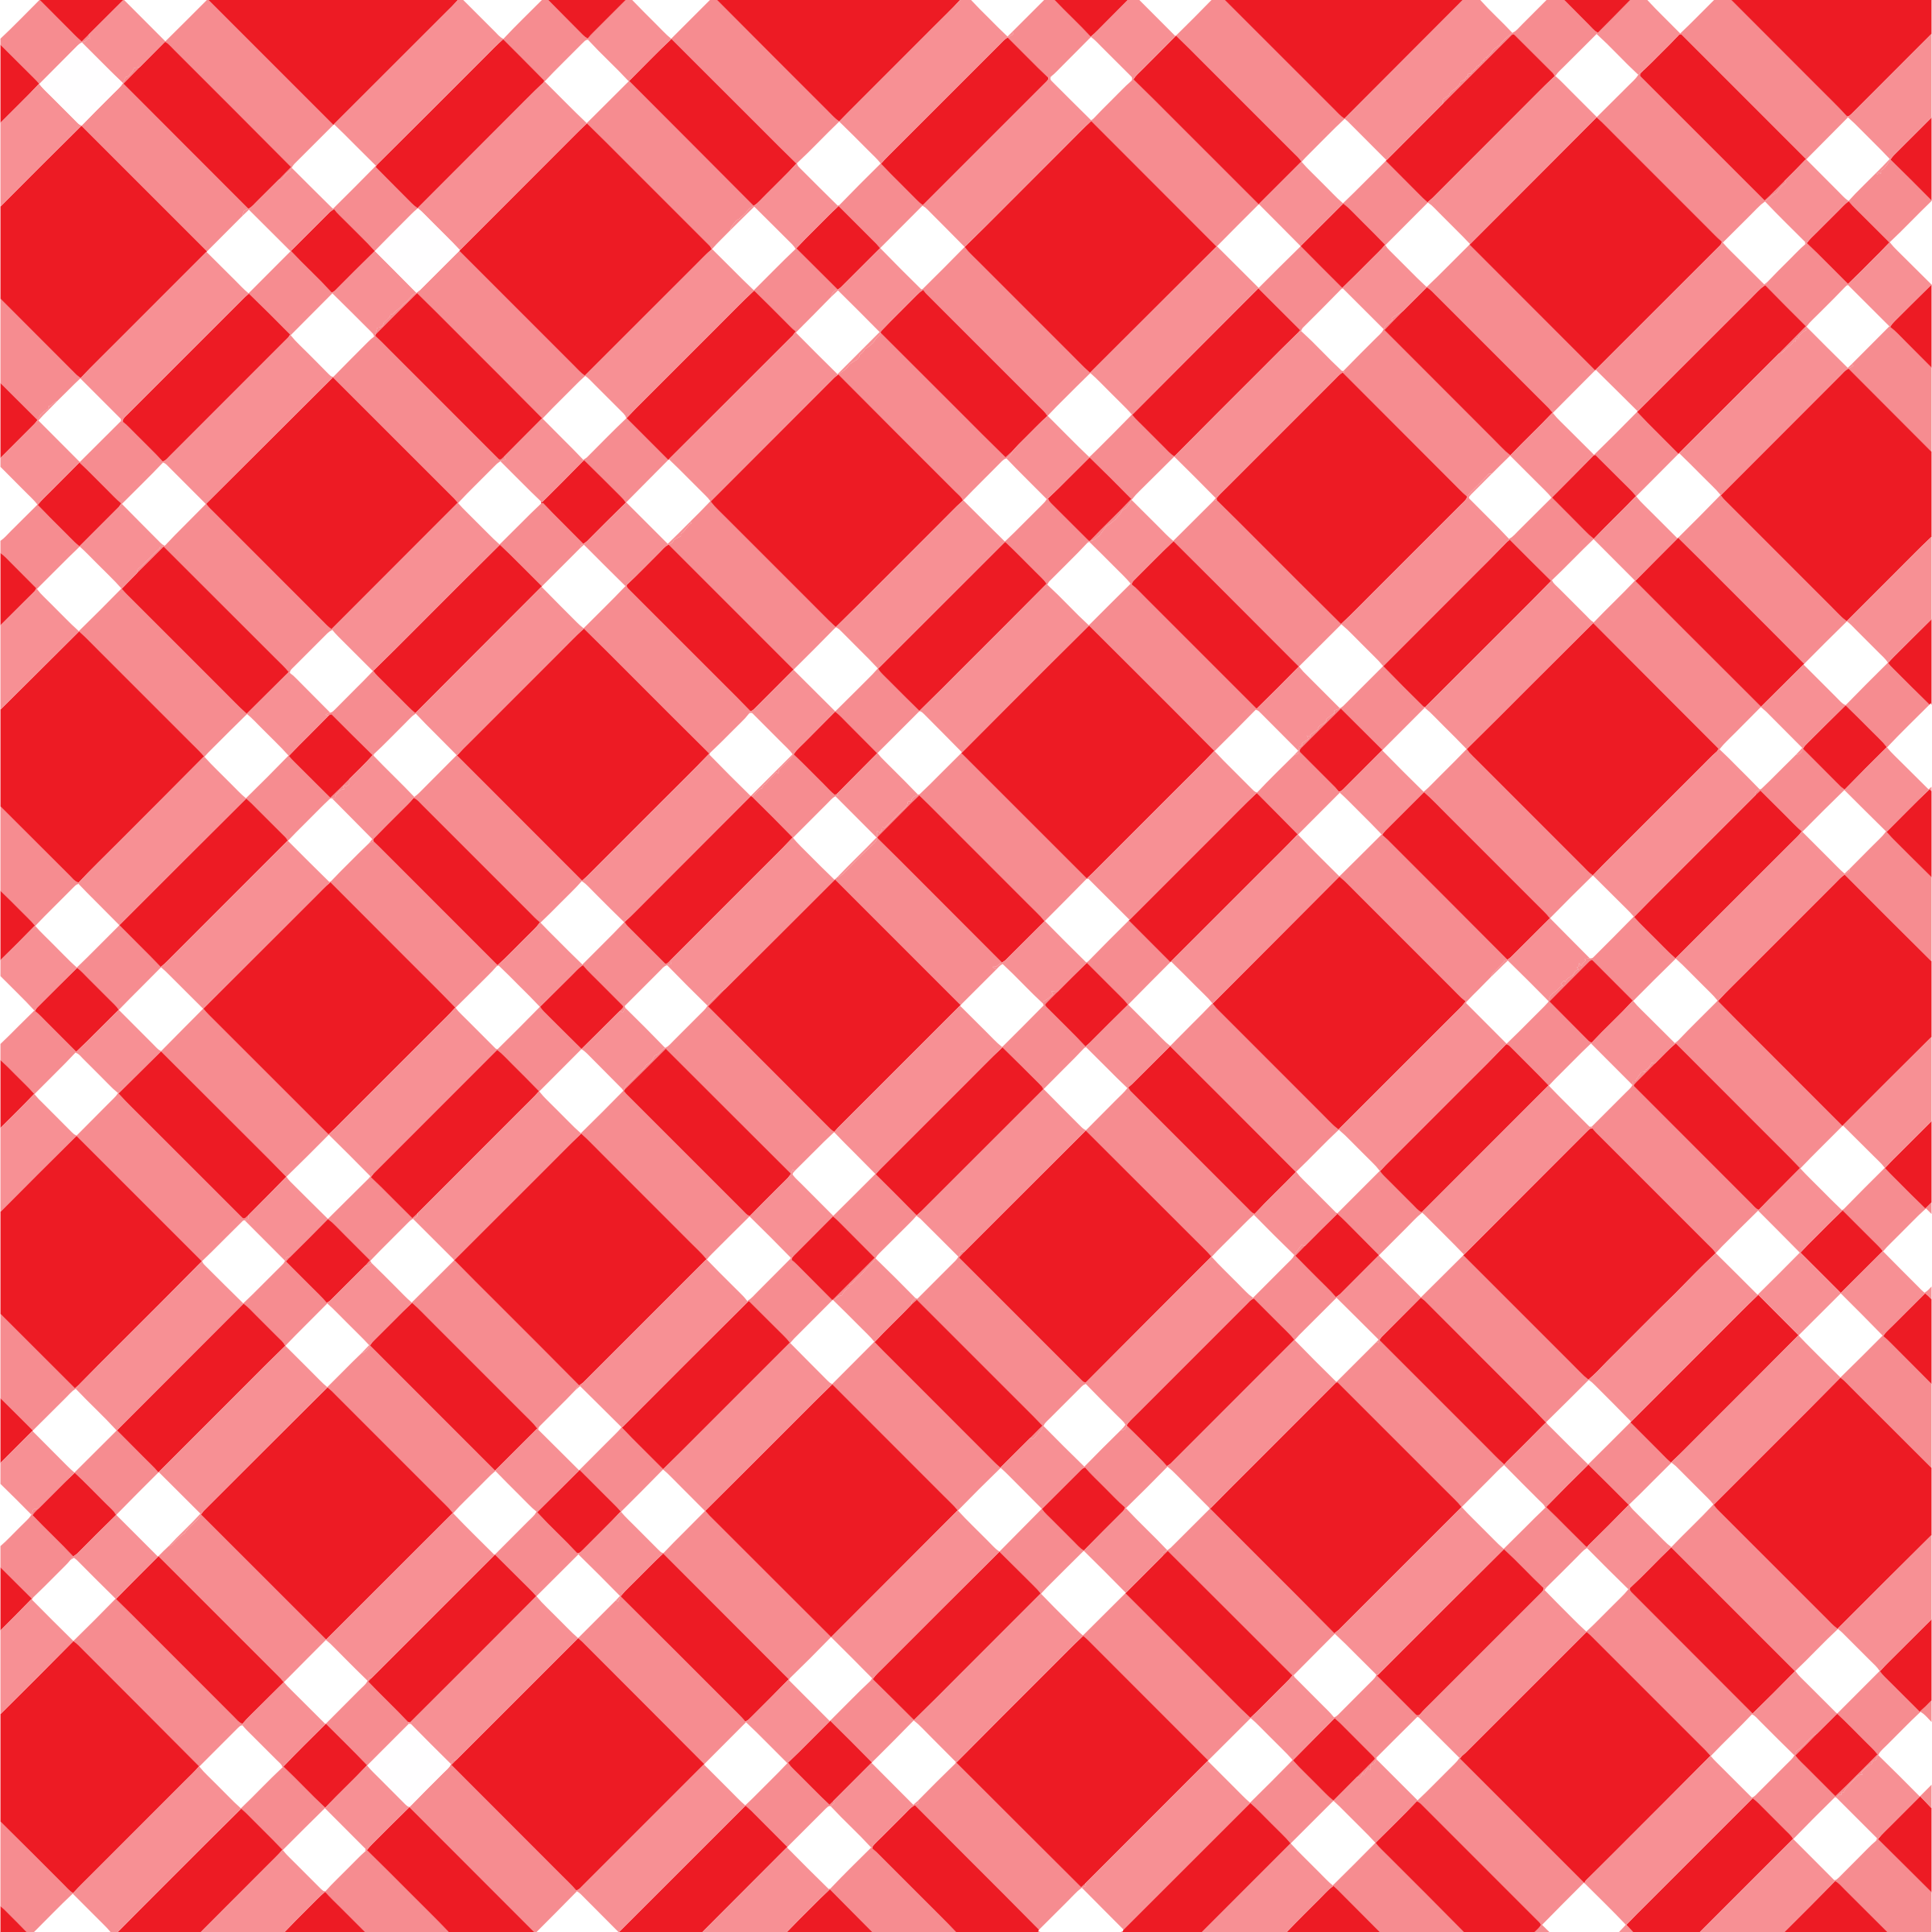 Checkered background clipart.